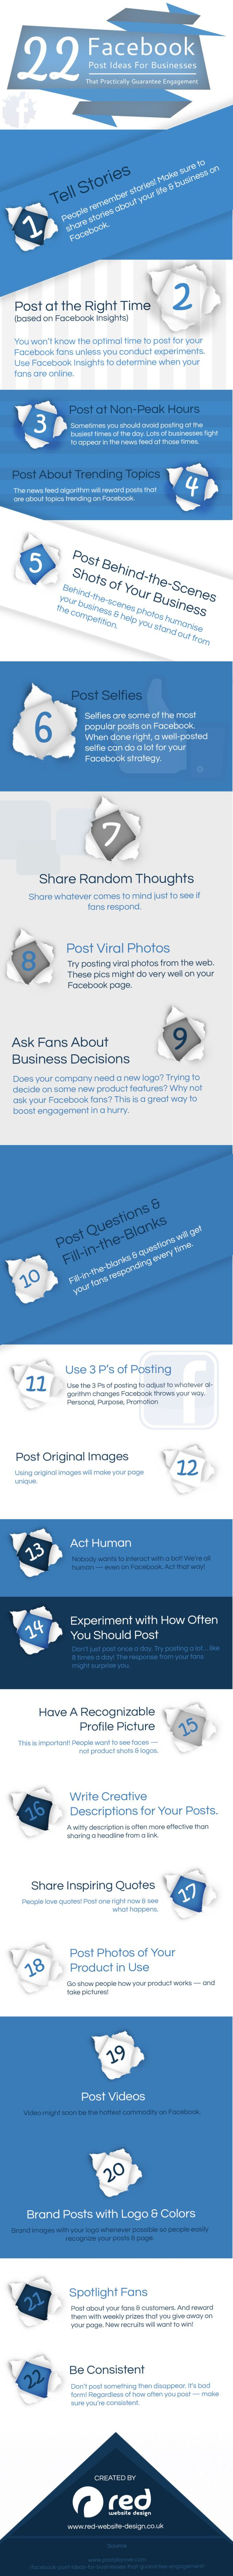 22 Facebook post ideas for businesses #infographic #socialmedia